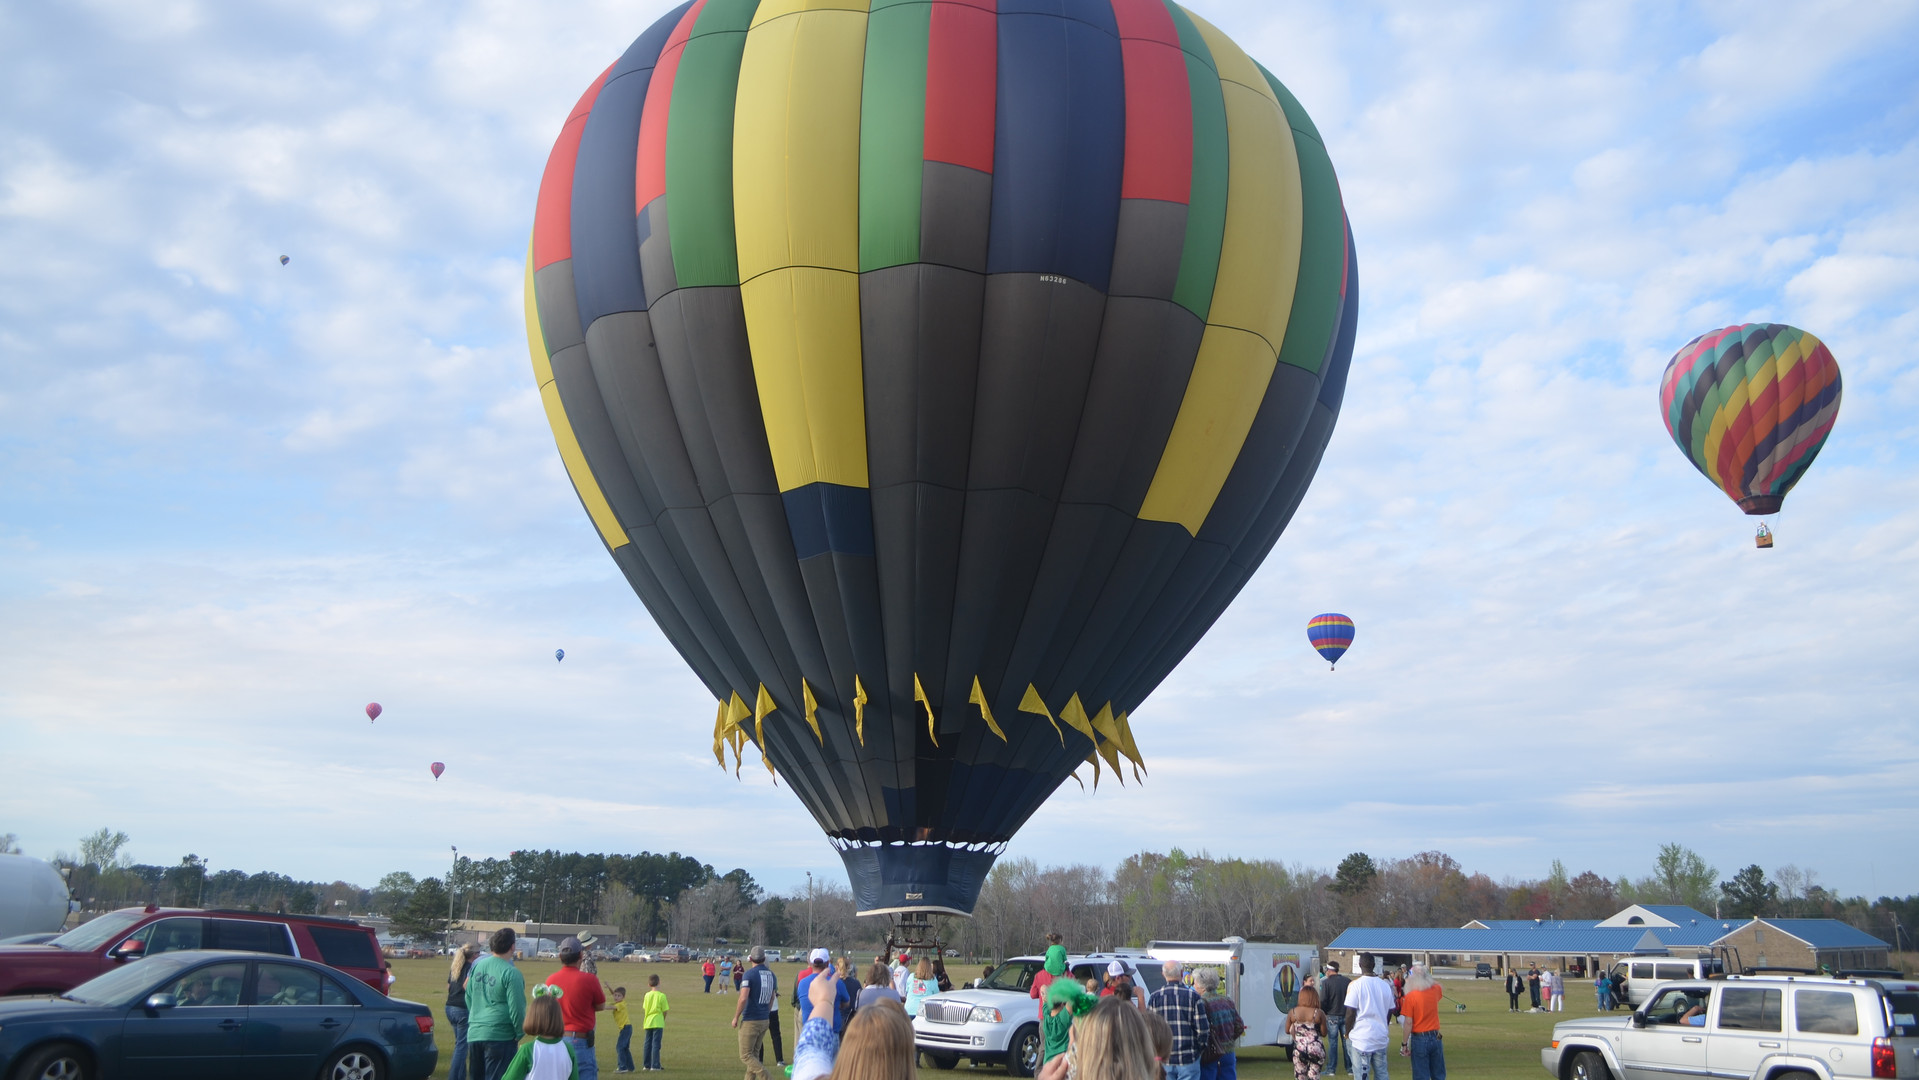 Airborne hot air balloons dot the sky as another (at center) prepares to launch from Southern Pines Regional Park at the 2018 Irish Balloon Fest, a major event in the annual Dublin-Laurens Saint Patrick's Festival.